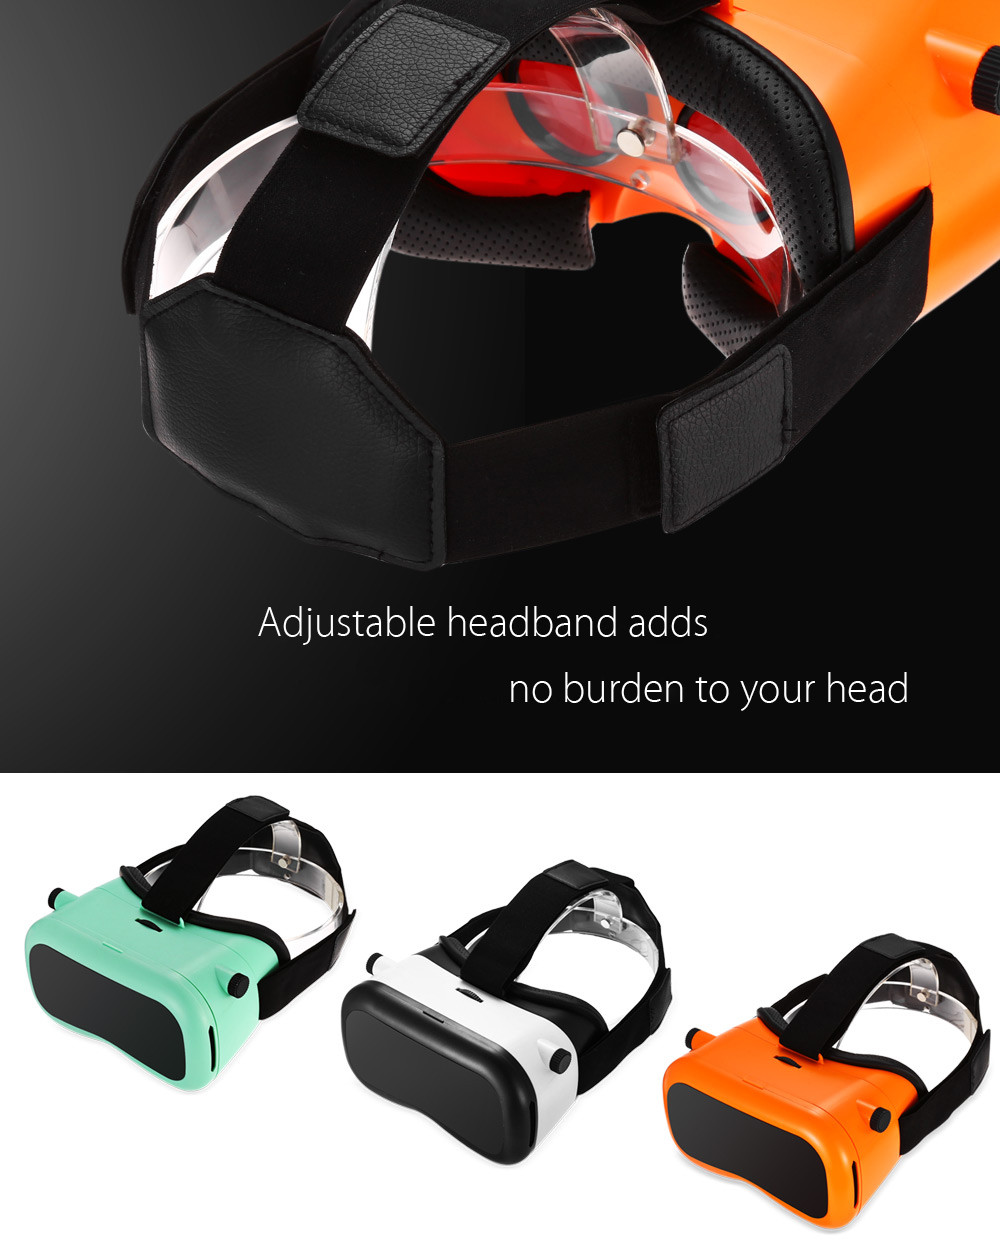 SENKAMA 3D VR Glasses with IPD Adjustment for 4.7 - 6 inch Phones